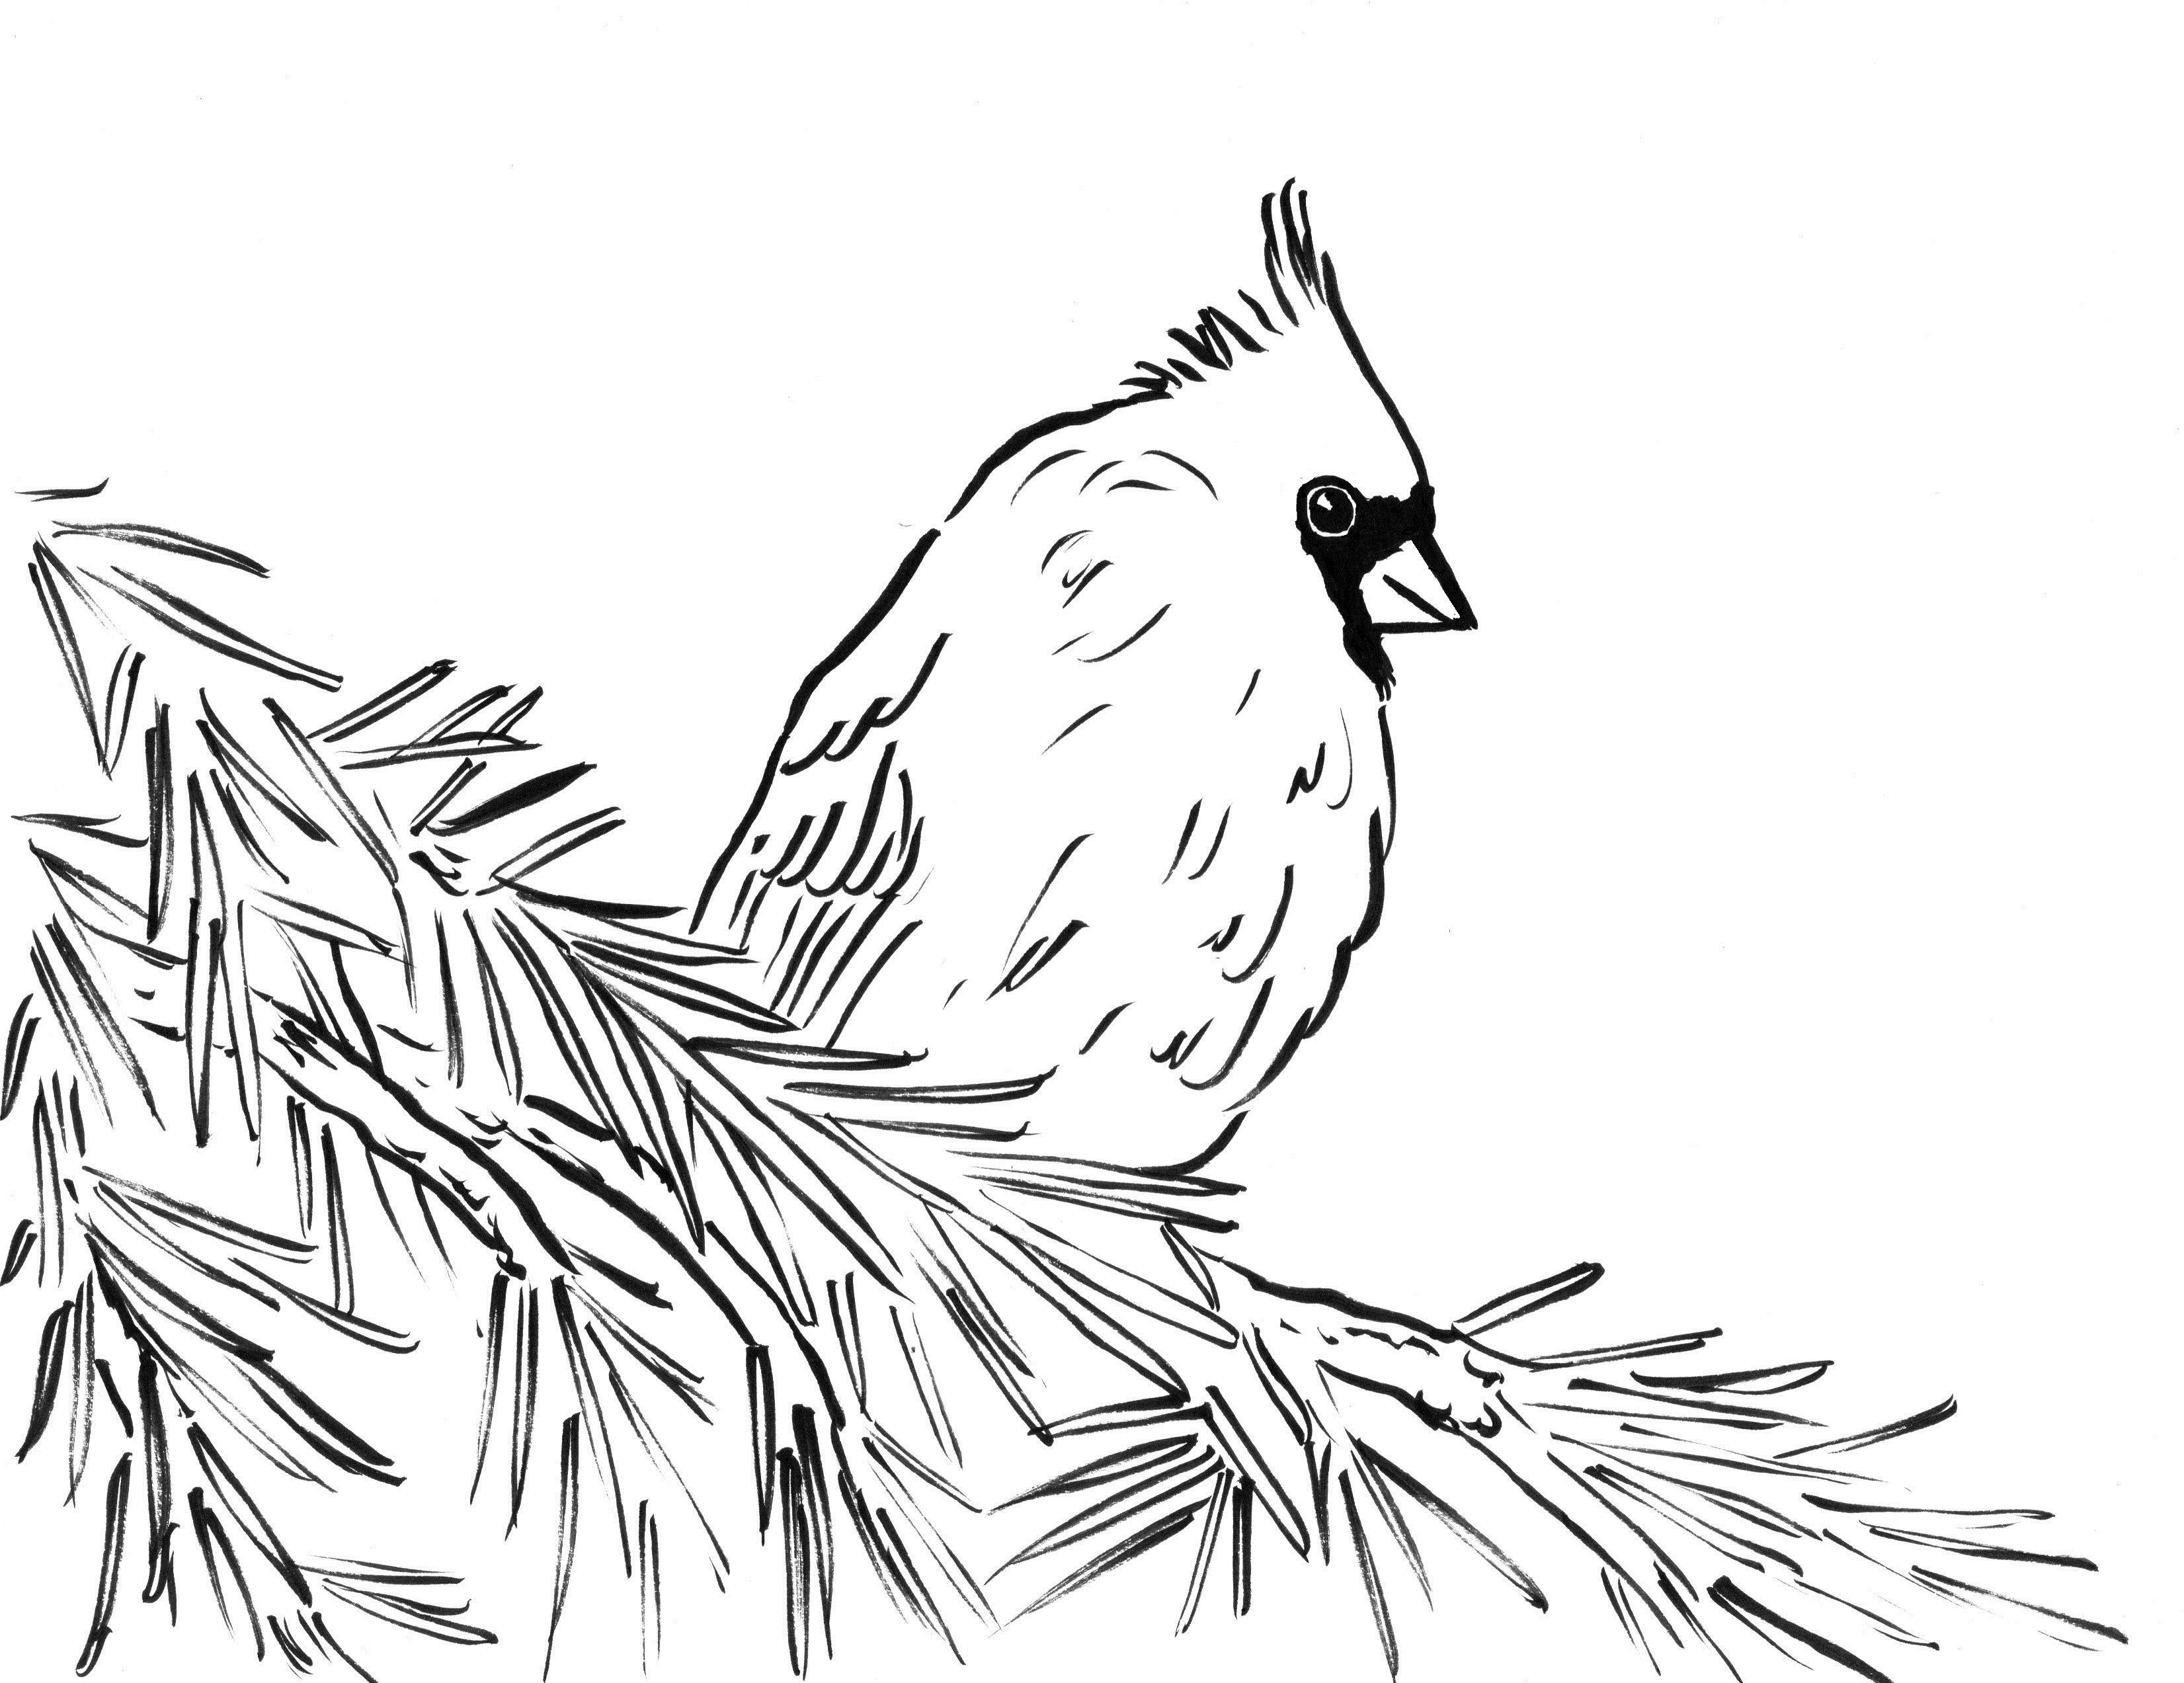 Coloring Pages Red Bird New Northern Cardinal Red Bird Coloring Page Pages Cardinals 7 Bird Coloring Pages Monster Coloring Pages Animal Coloring Pages